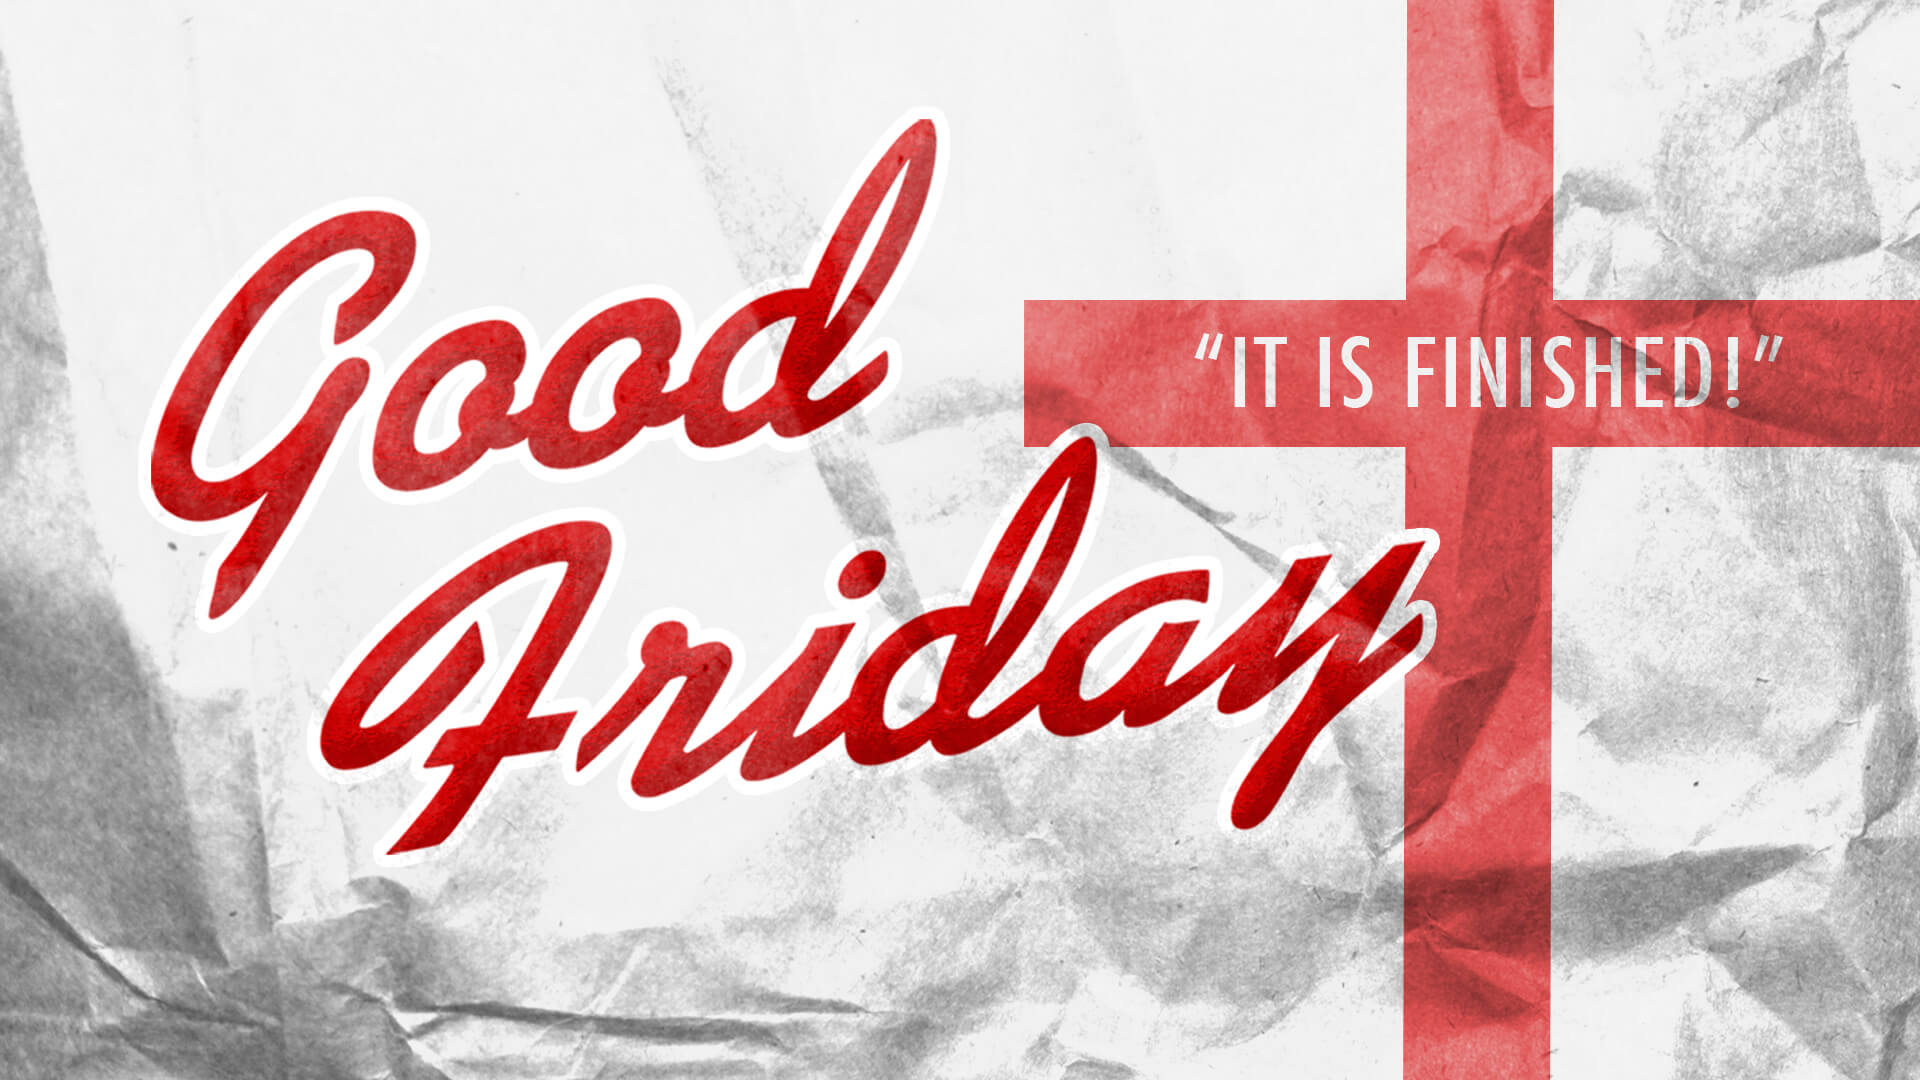 good friday hd wallpaper free image background